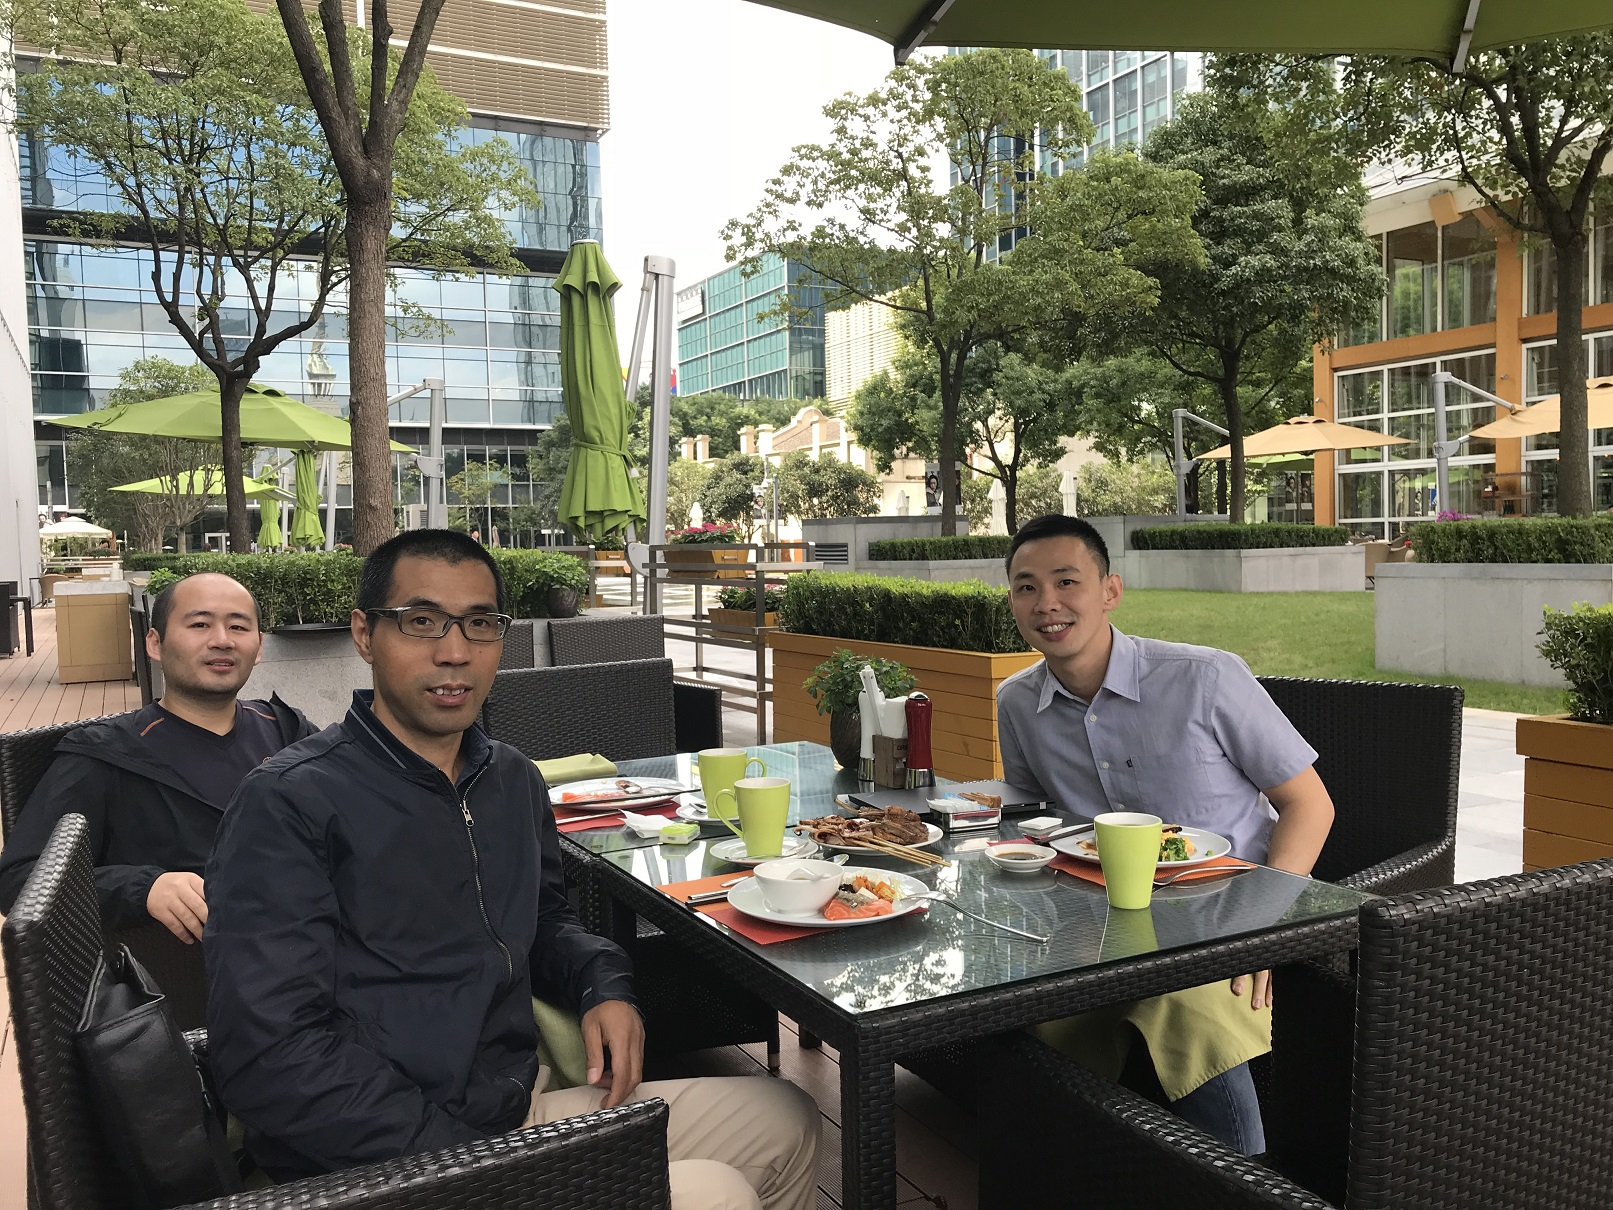 Lunch with Bing and Michael enjoying good food in the autumn outdoor!